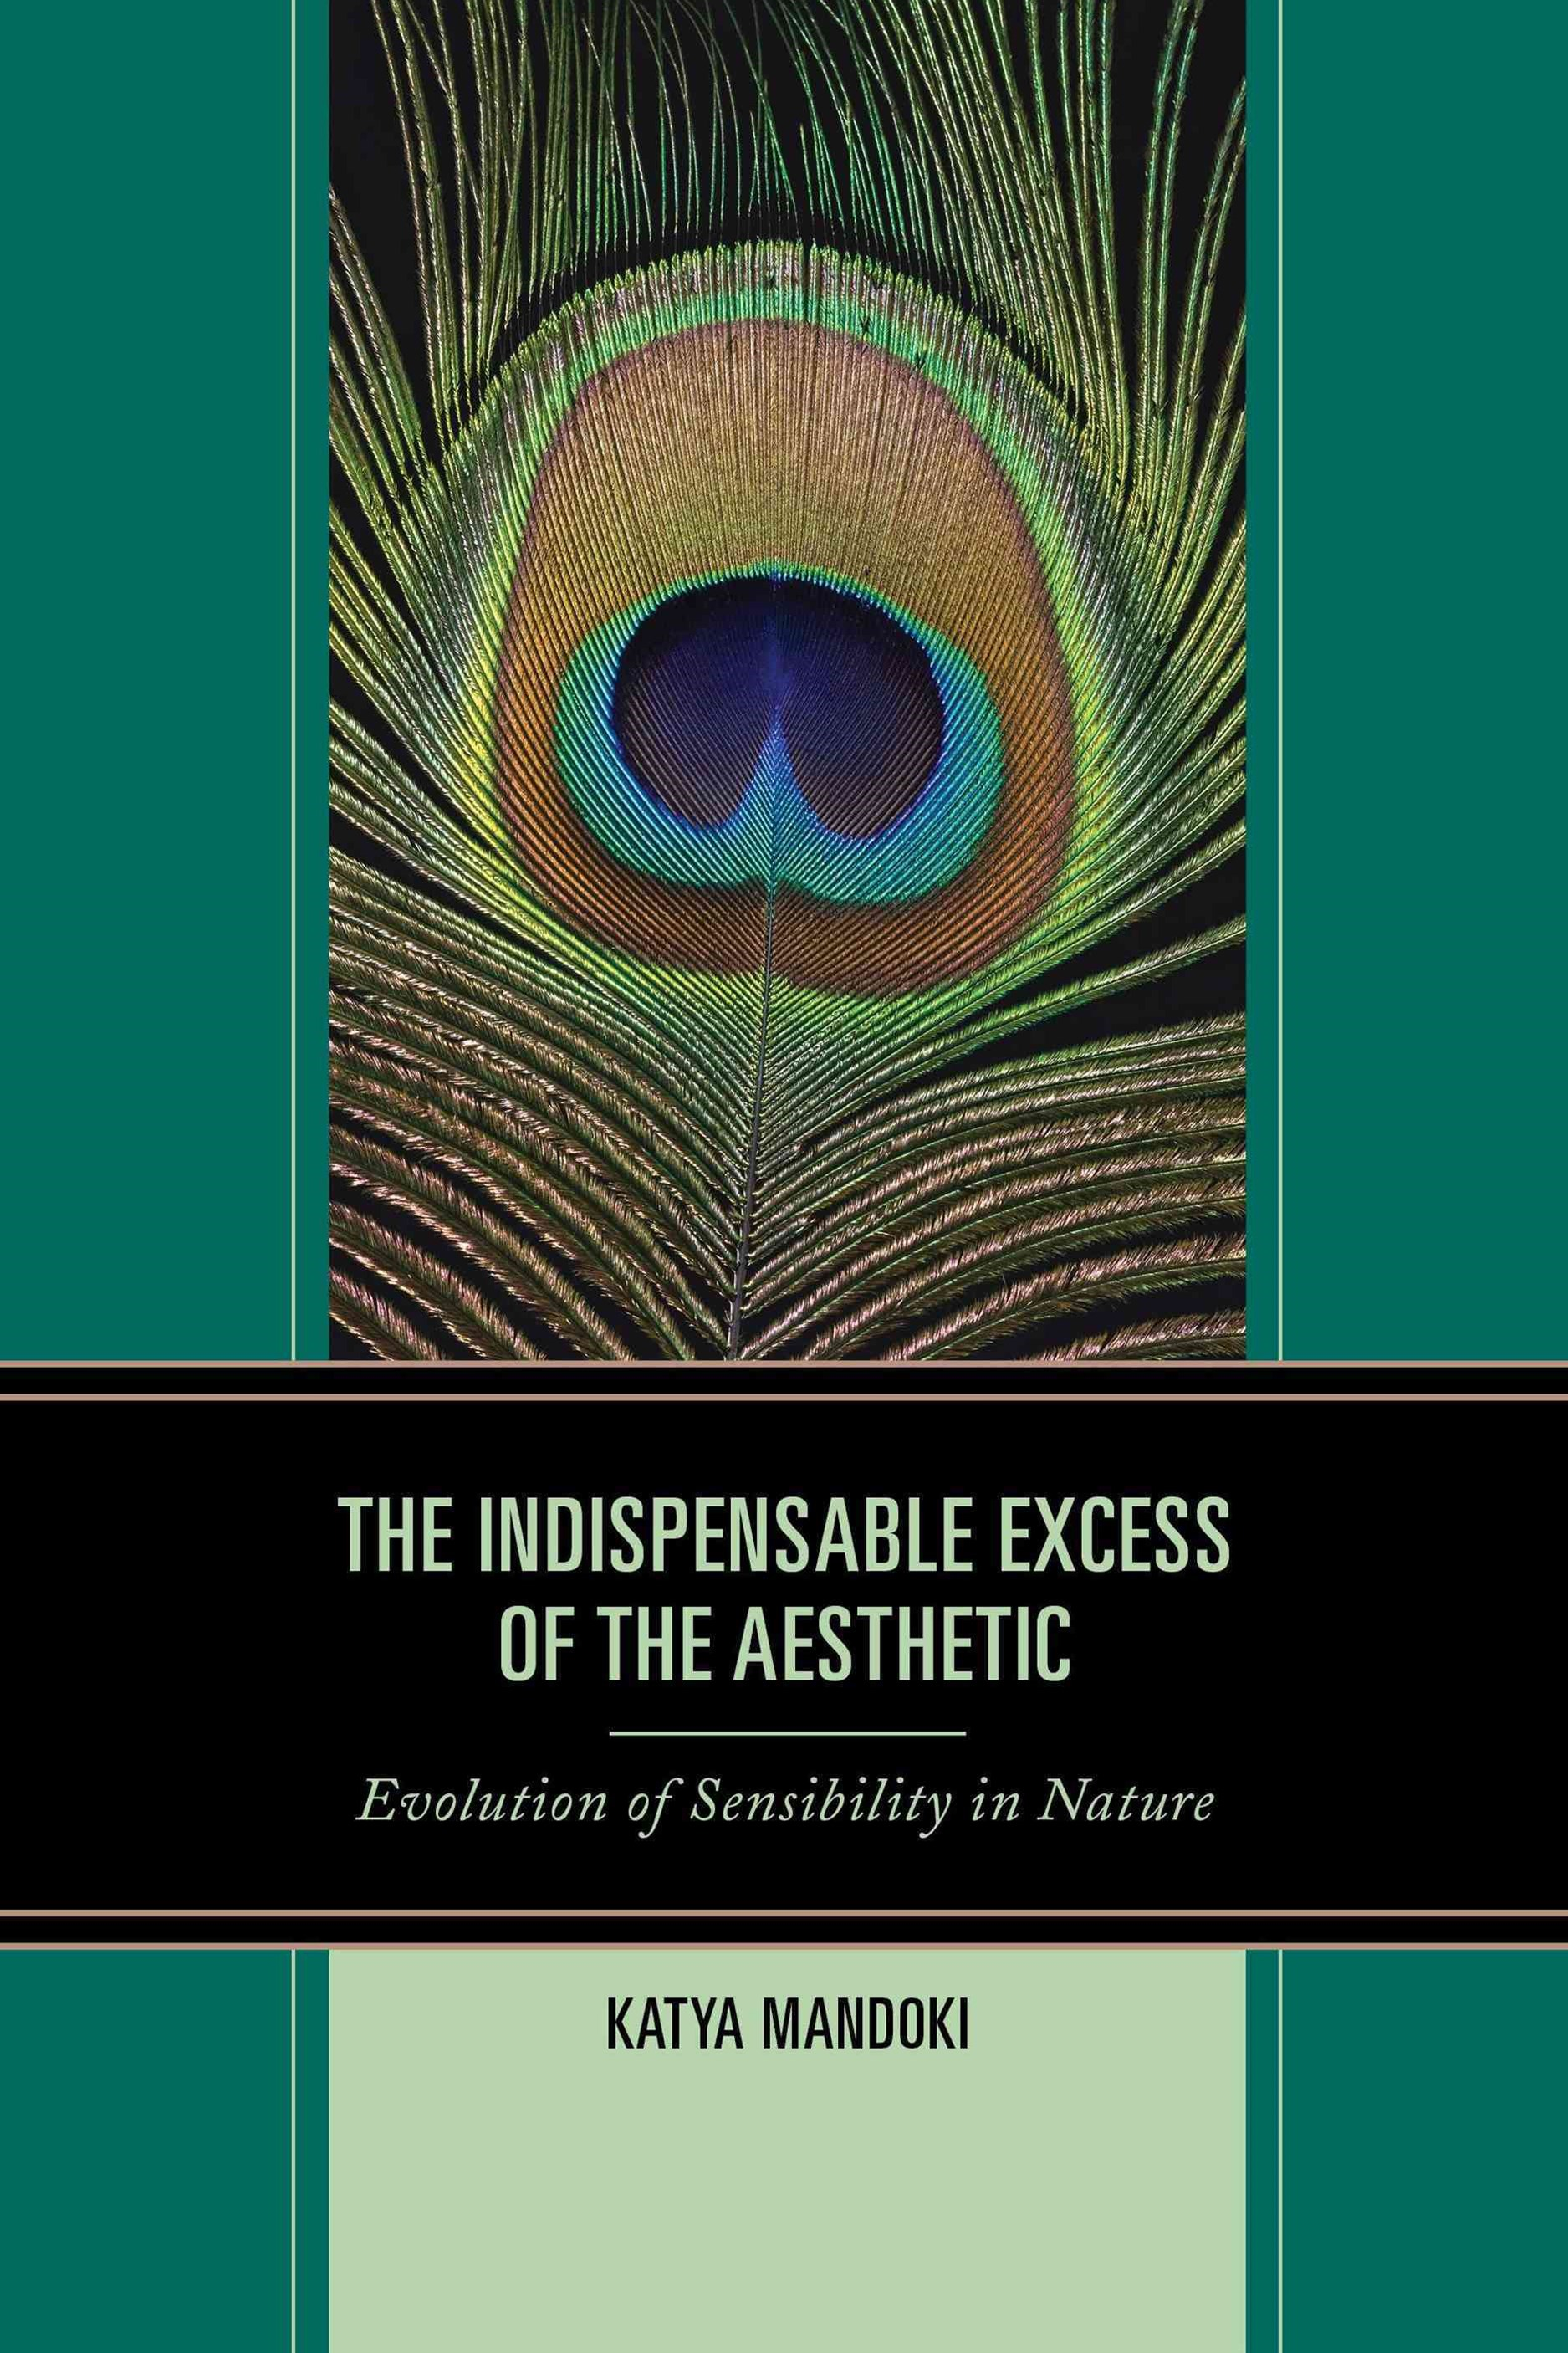 The Indispensable Excess of the Aesthetic